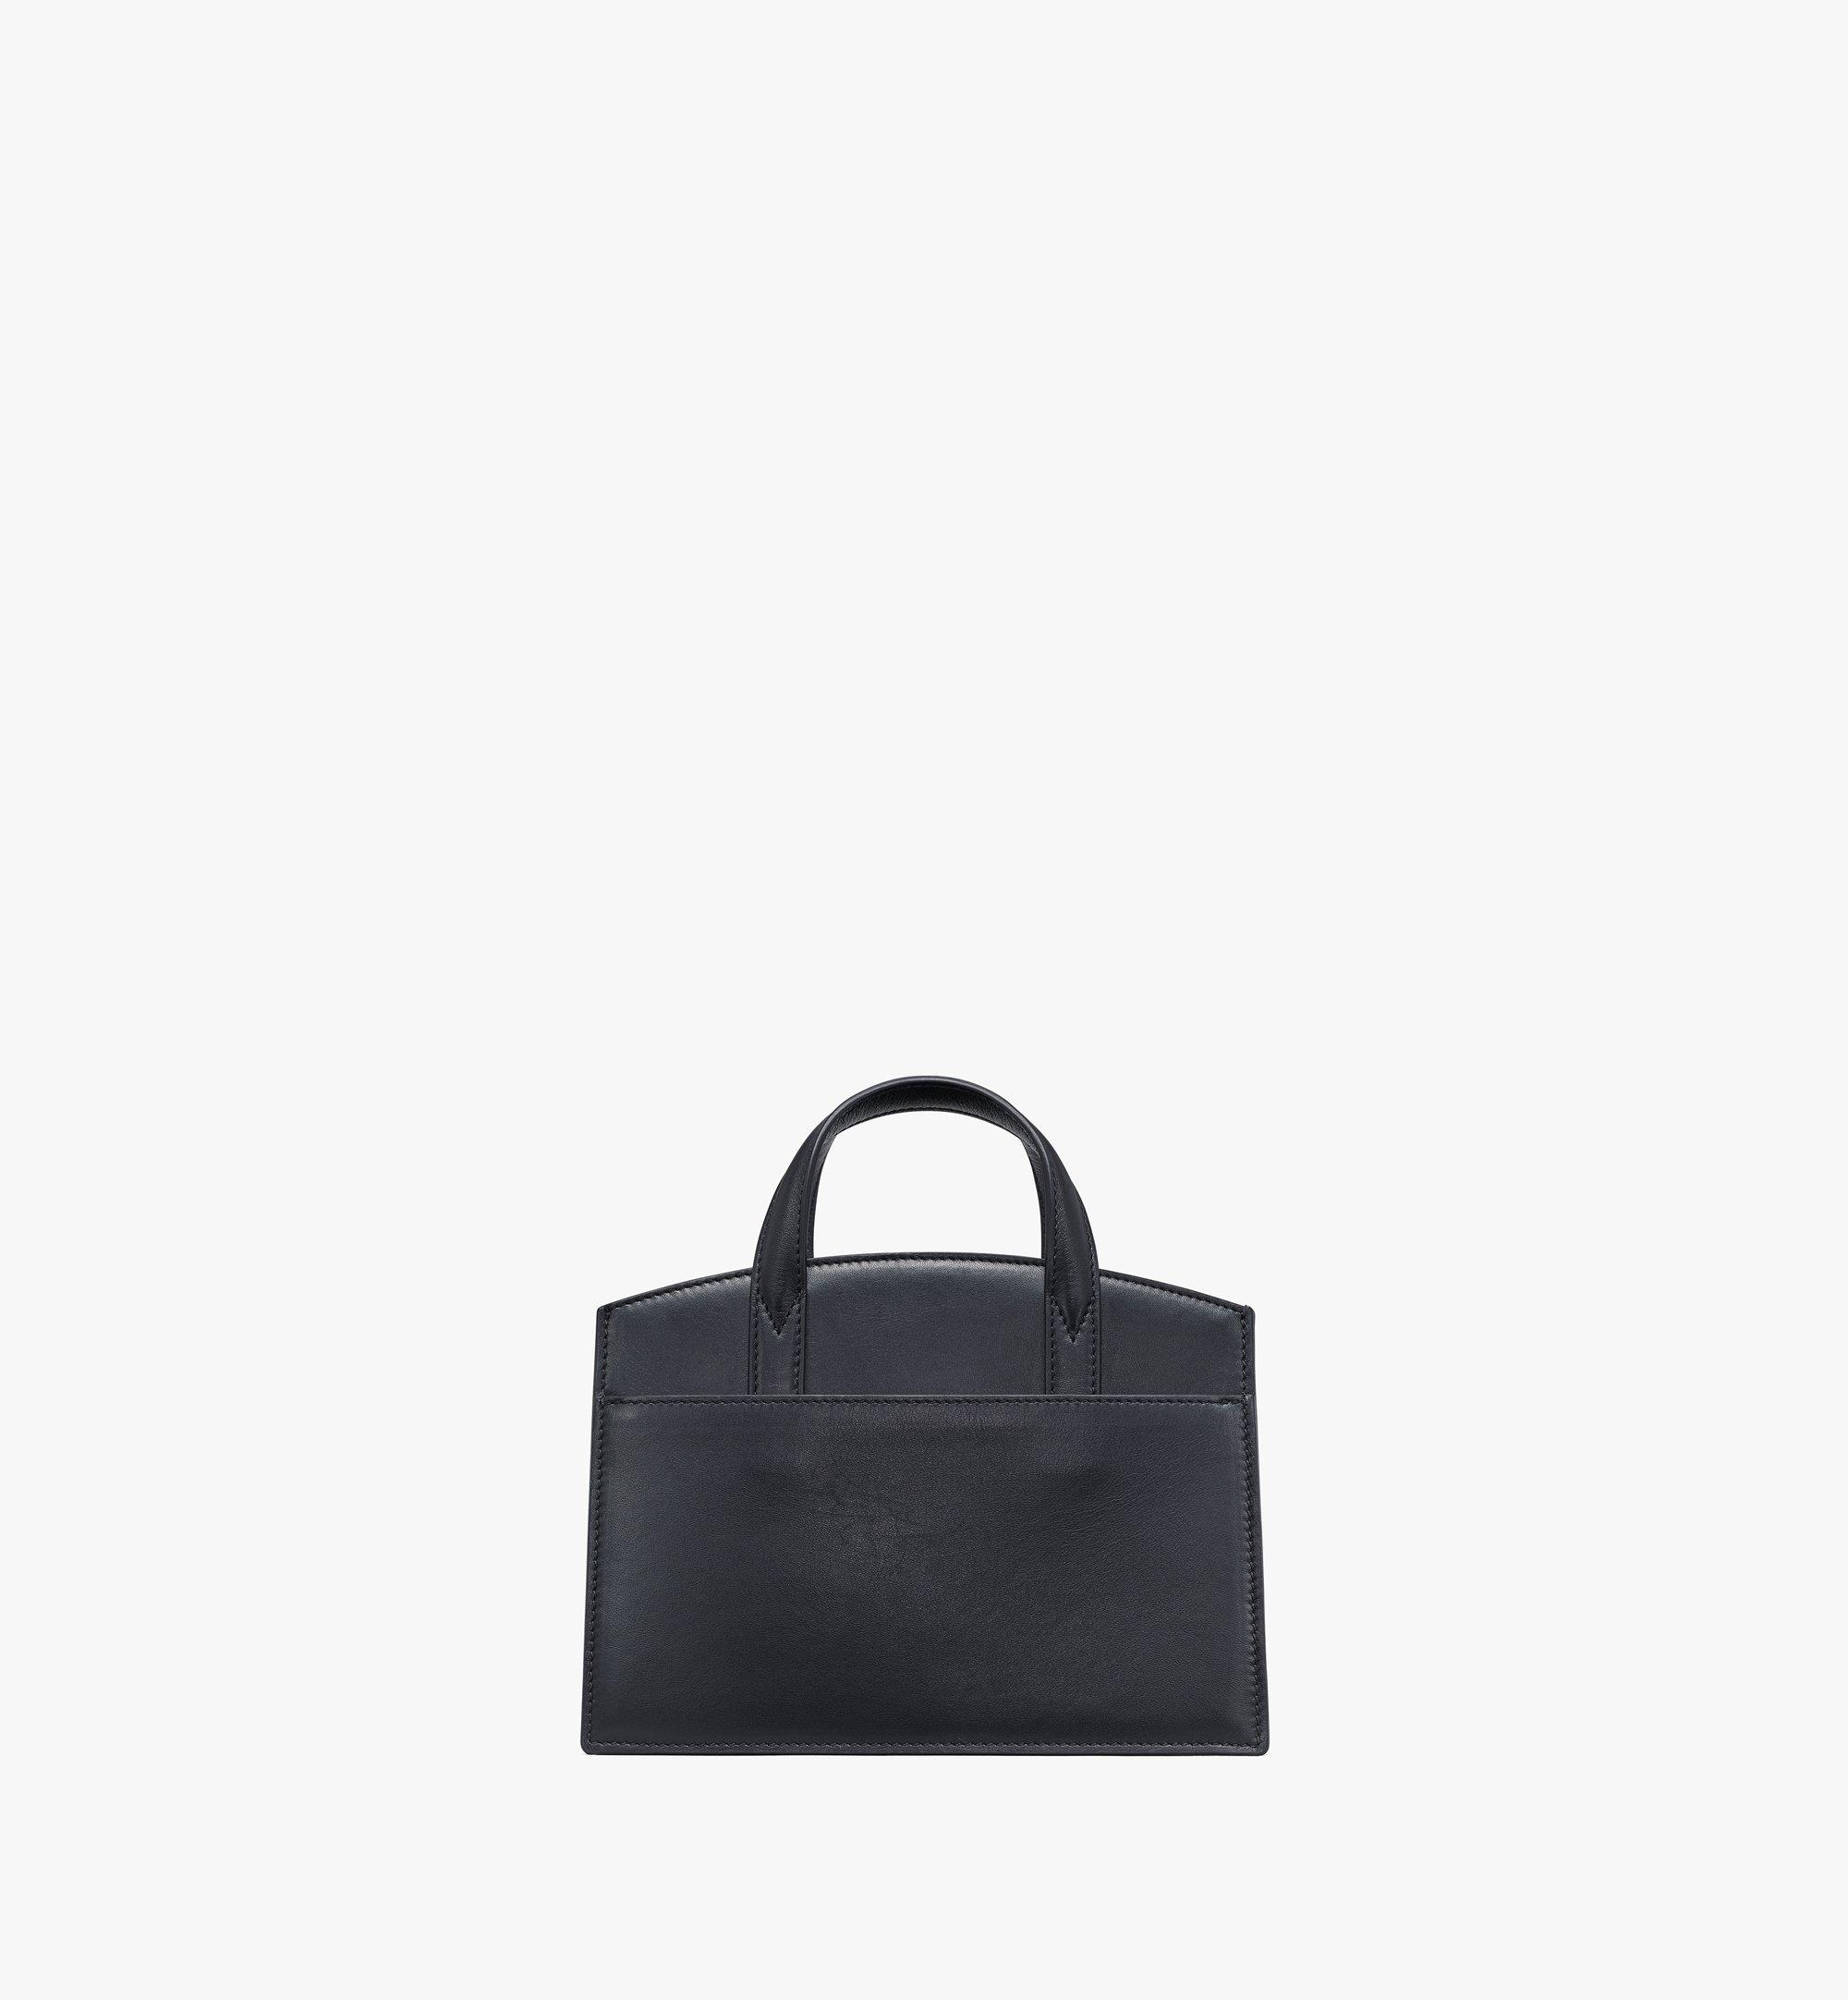 MCM Milano Lux Tote in Studded Leather Black MWTAADA04BK001 Alternate View 4